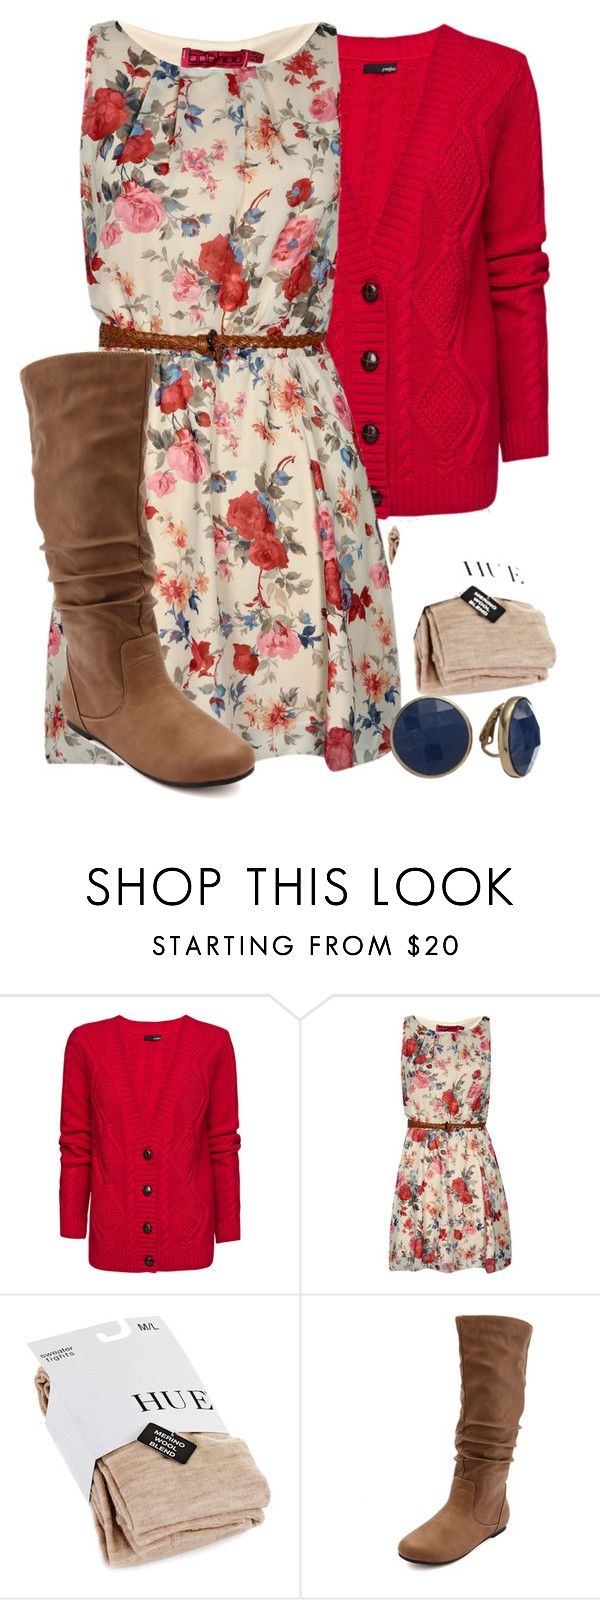 """""""Teacher Outfits on a Teacher's Budget 149"""" by allij28 ❤ liked on Polyvore featuring MANGO, Boohoo, Hue, Charlotte Russe and Dana Buchman"""